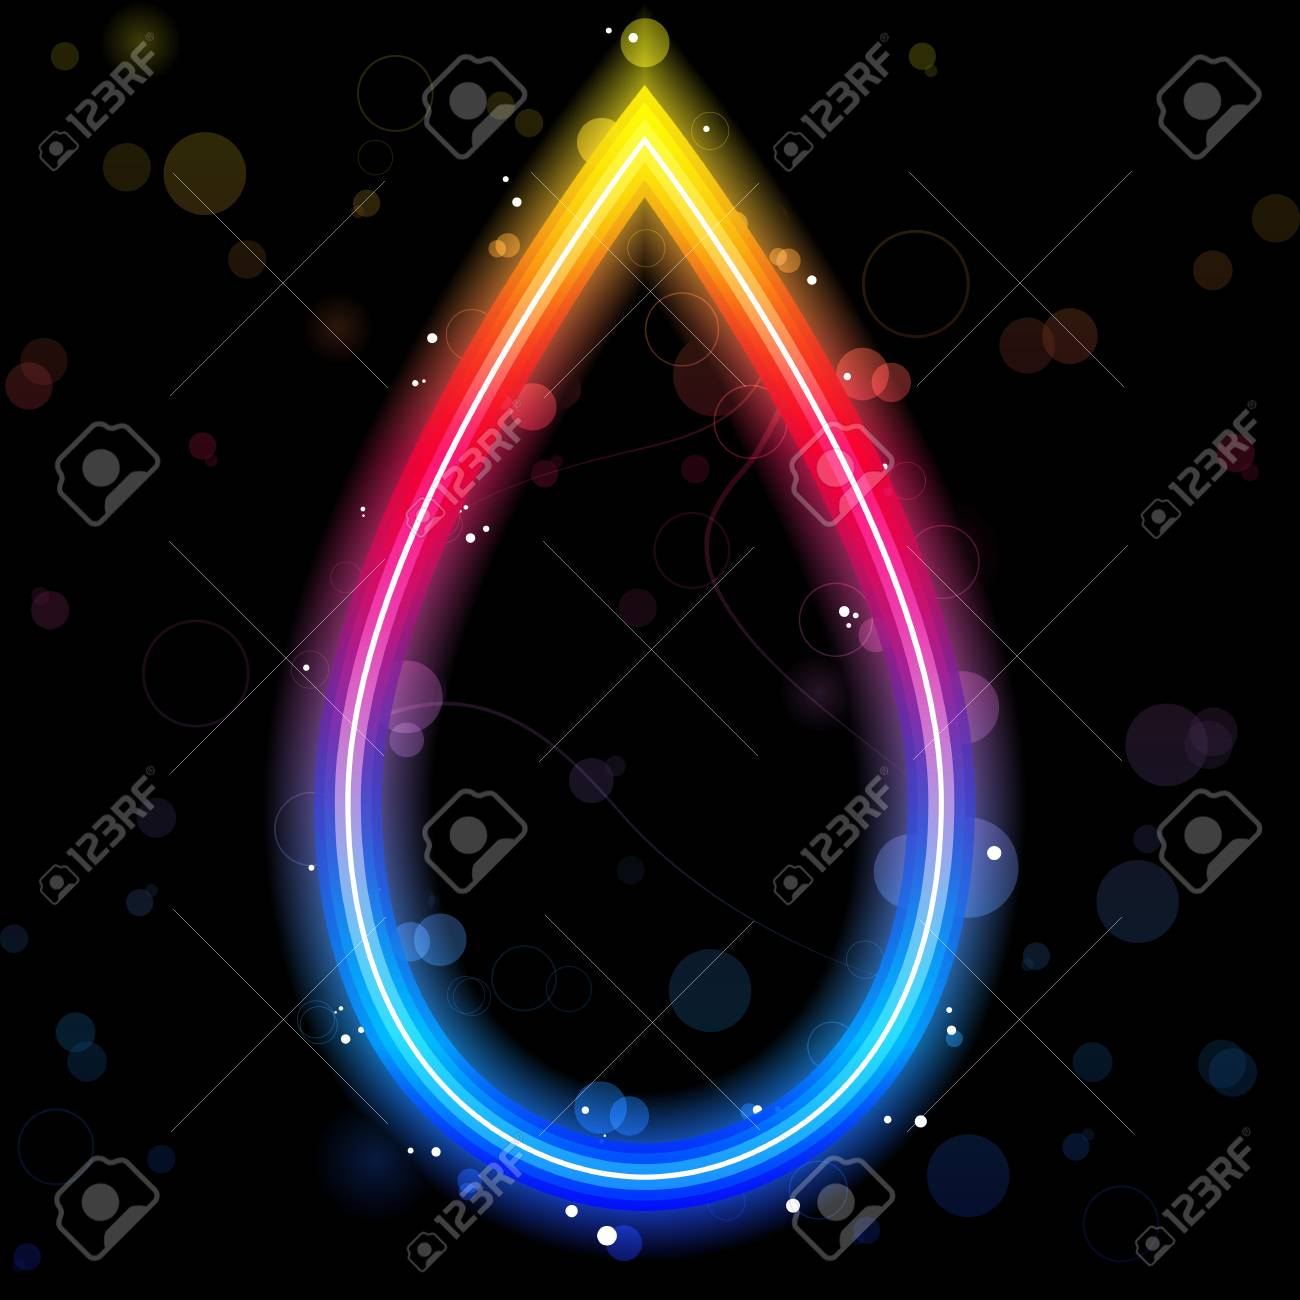 Rainbow Drop Border with Sparkles and Swirls. Stock Vector - 8213609